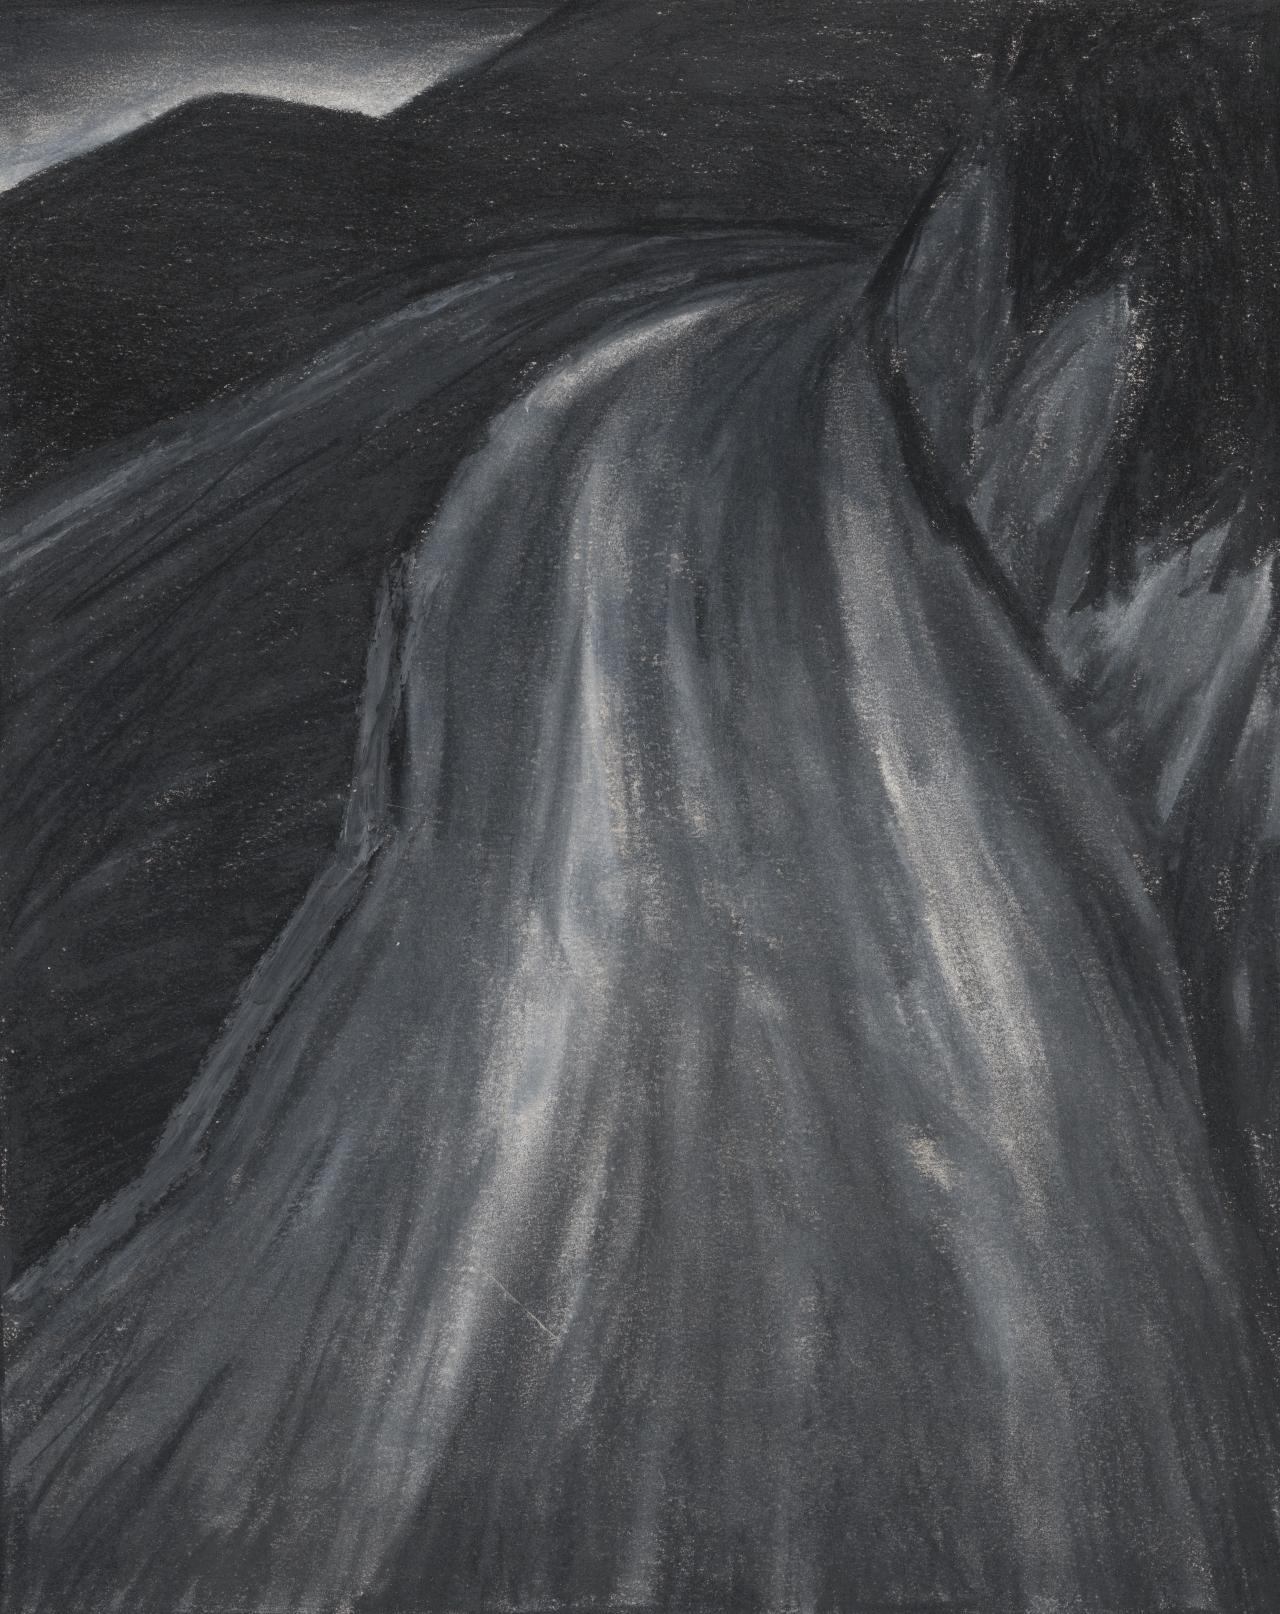 Drawing (Landscape with road)